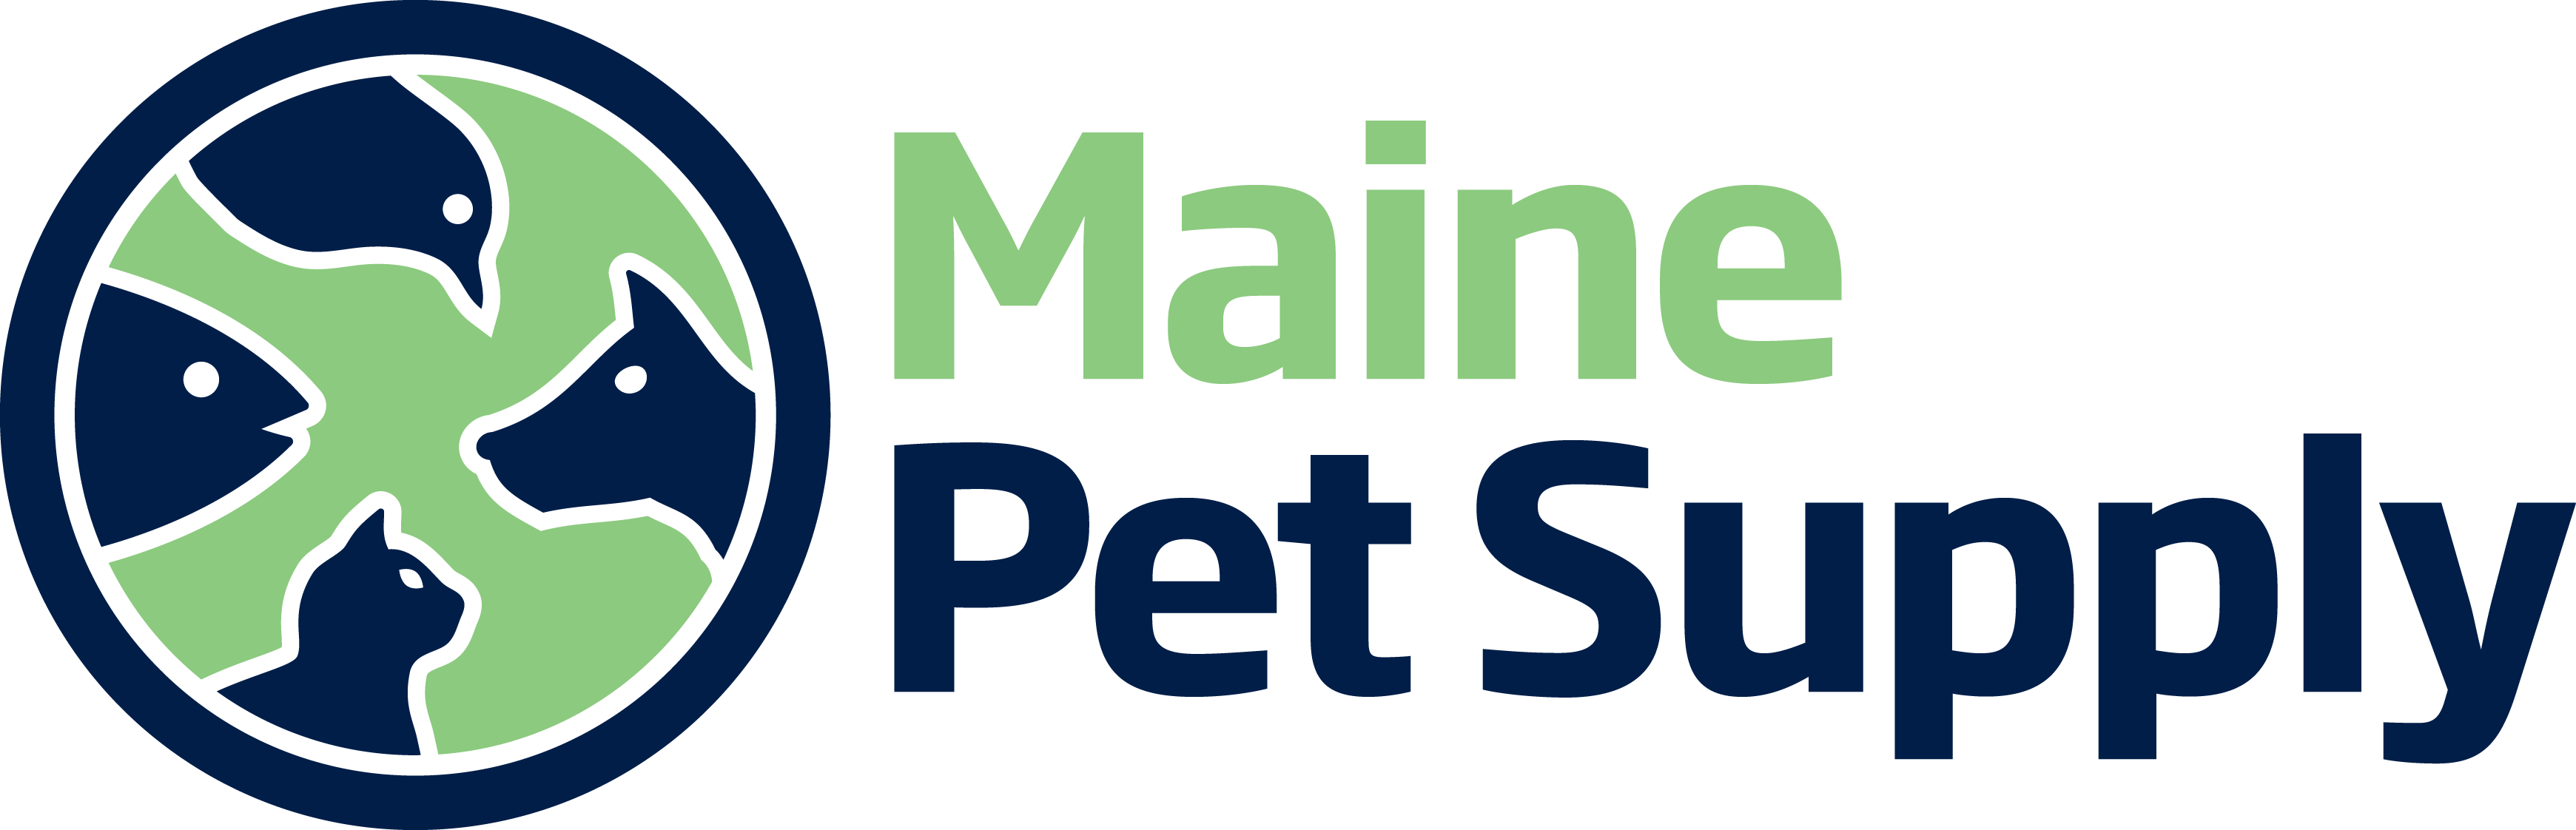 Maine Pet Supply